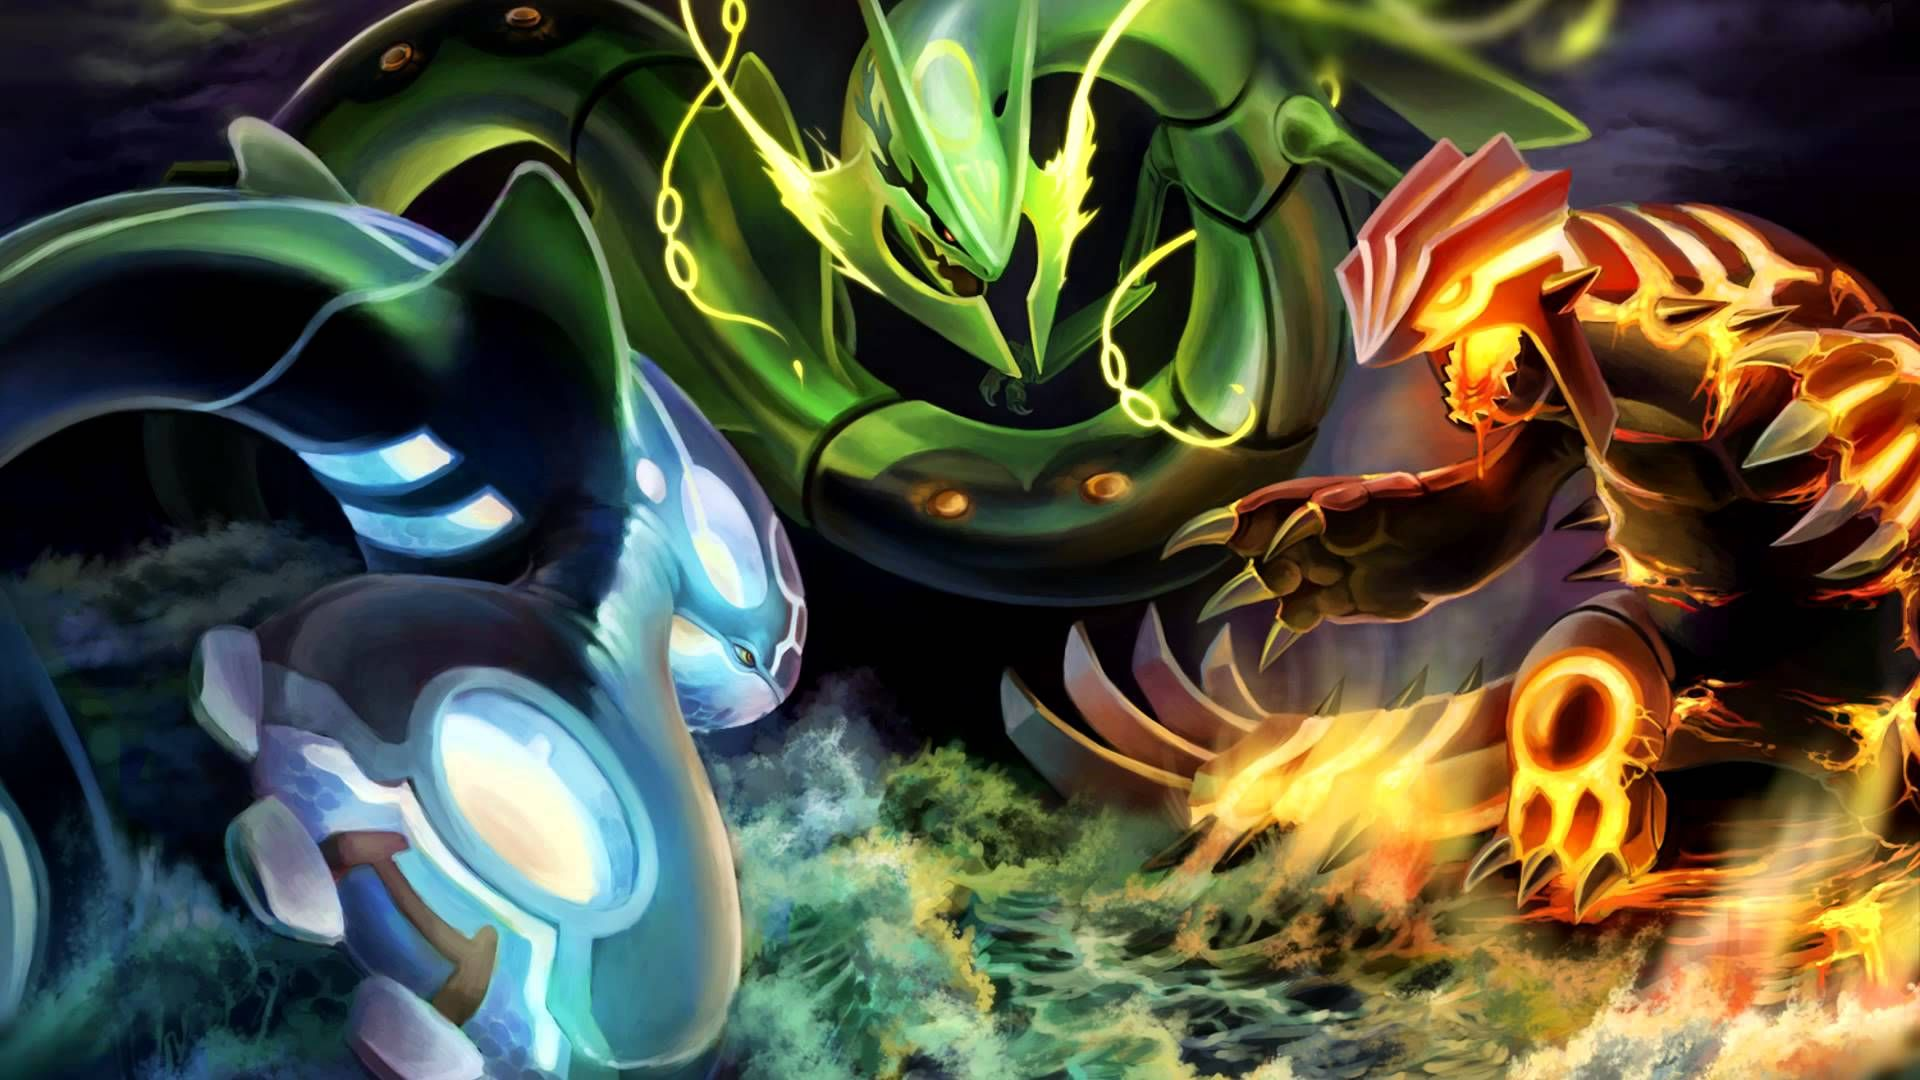 Legendary Pokemon Wallpapers Wide Sdeerwallpaper Cool Pokemon Wallpapers All Legendary Pokemon Pokemon Rayquaza